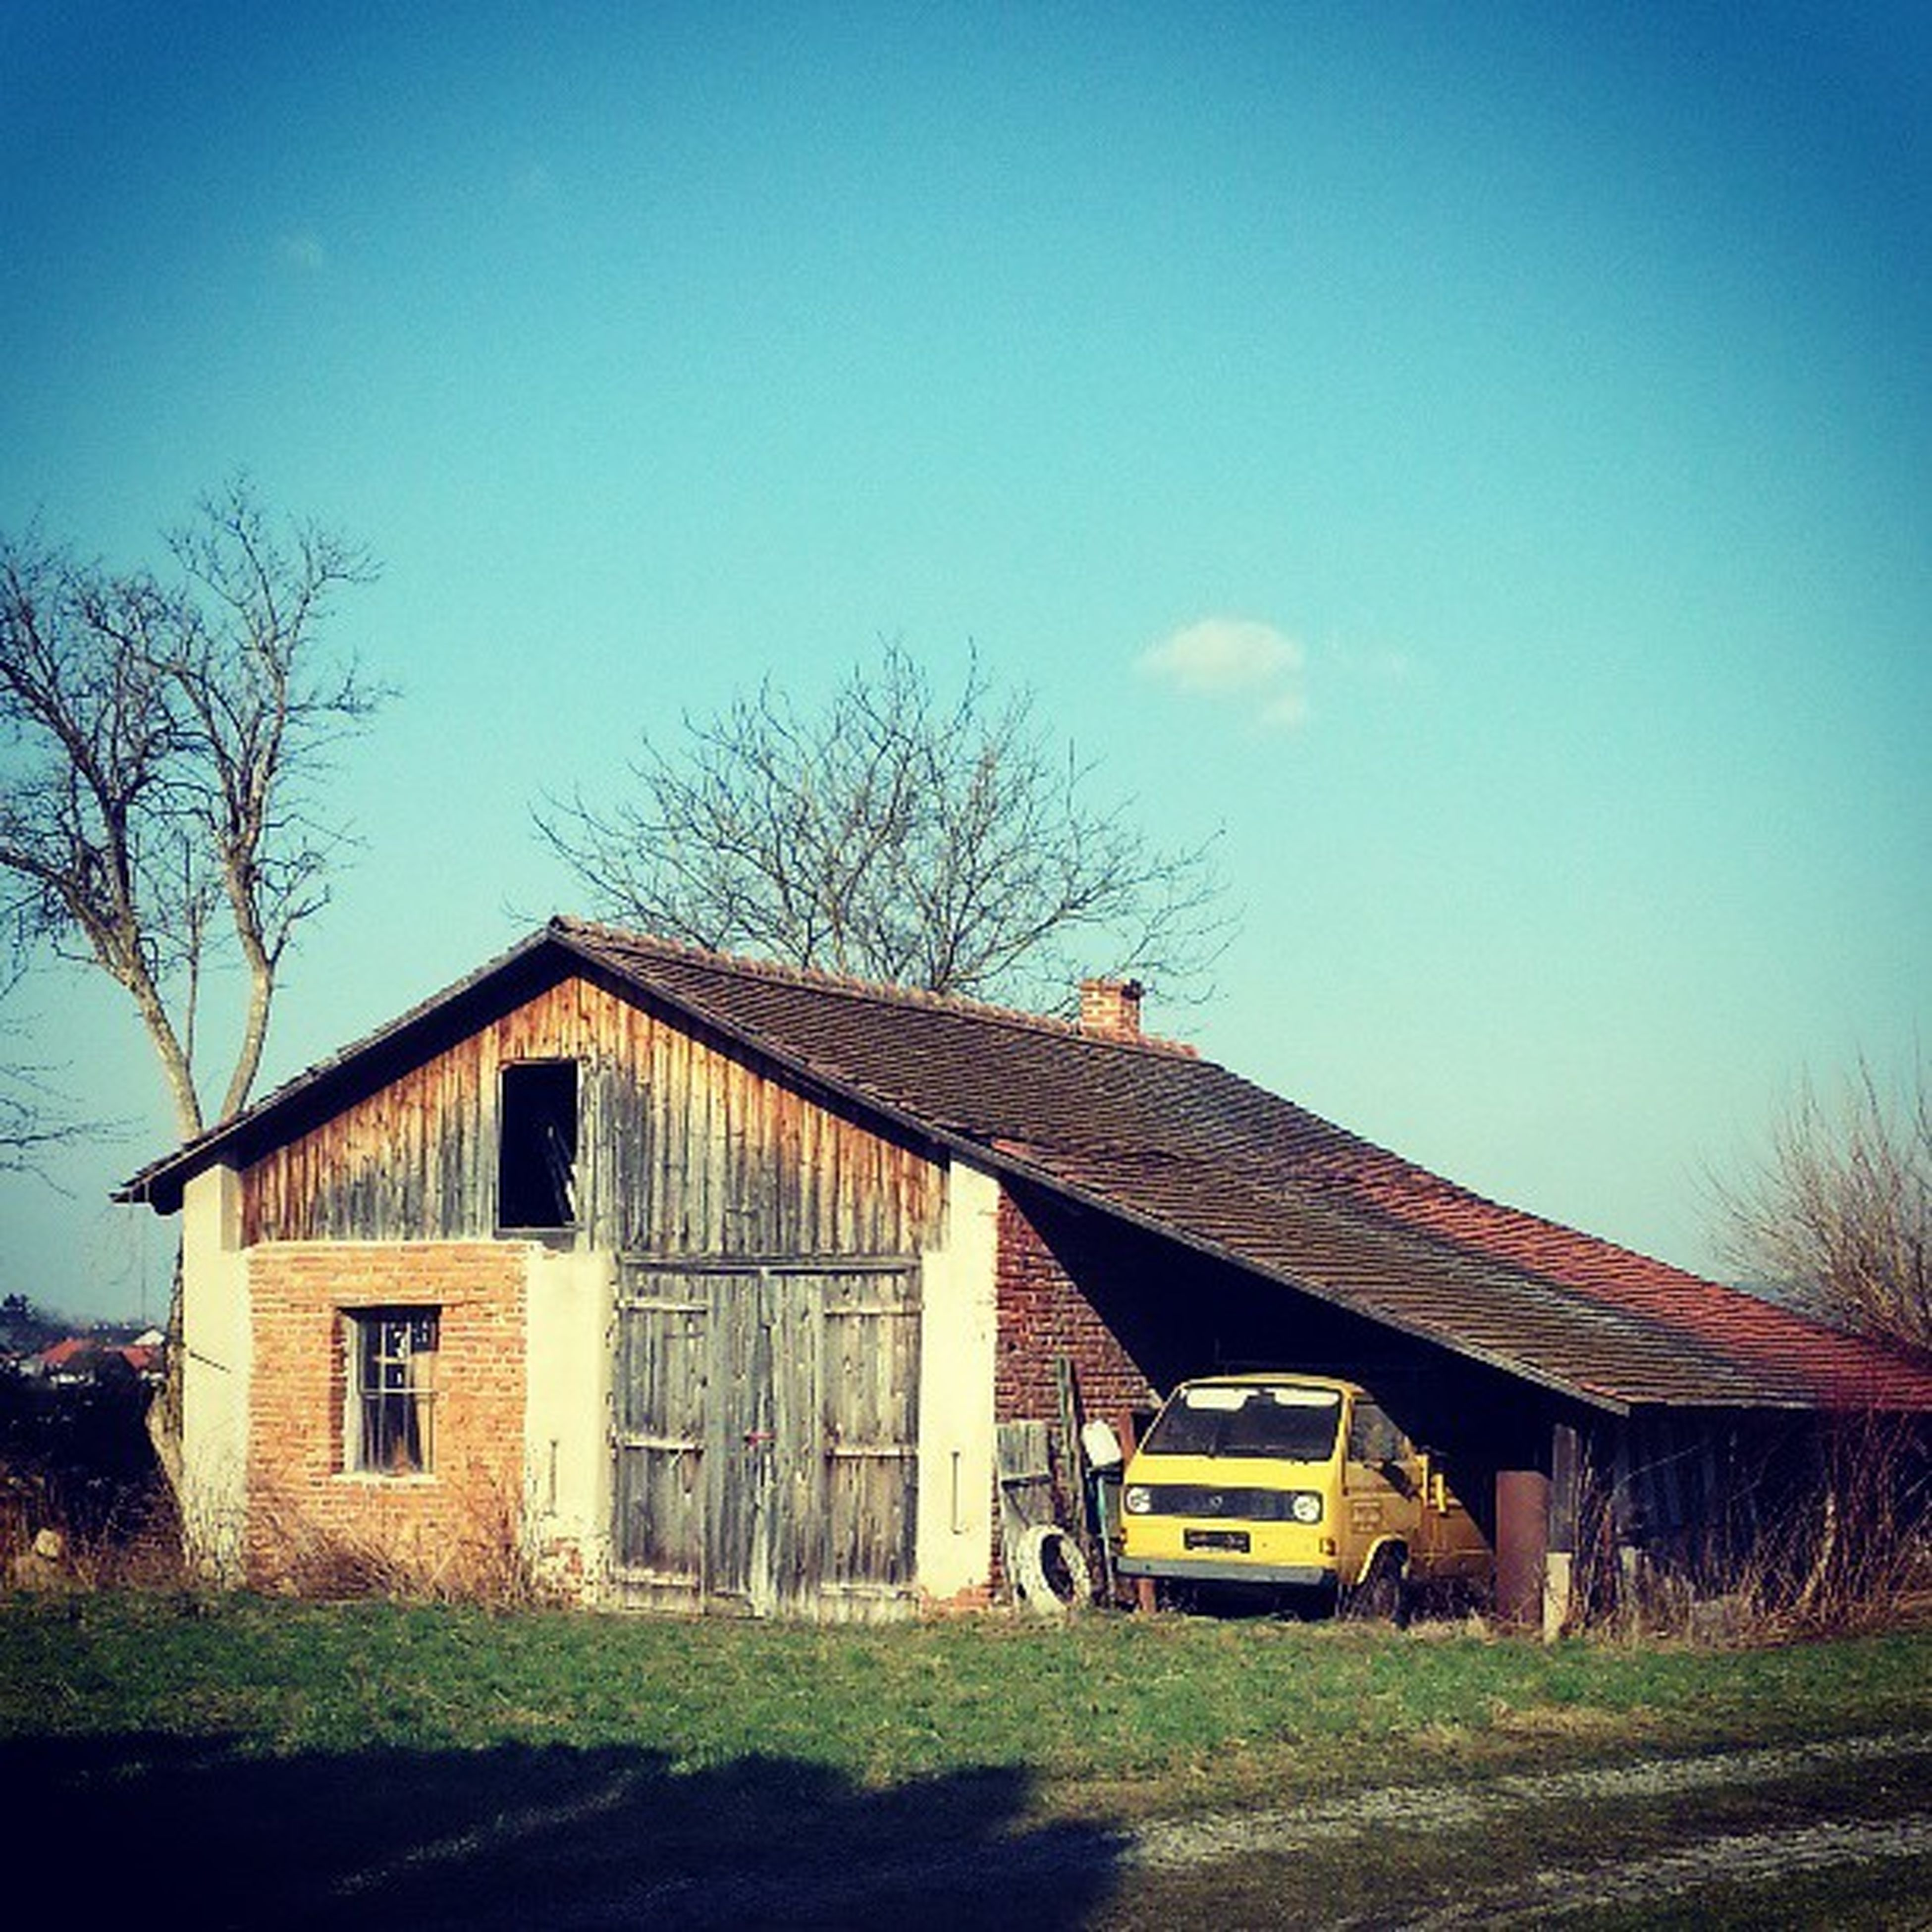 architecture, built structure, building exterior, clear sky, house, grass, tree, residential structure, copy space, field, blue, bare tree, barn, rural scene, residential building, sky, outdoors, day, no people, nature